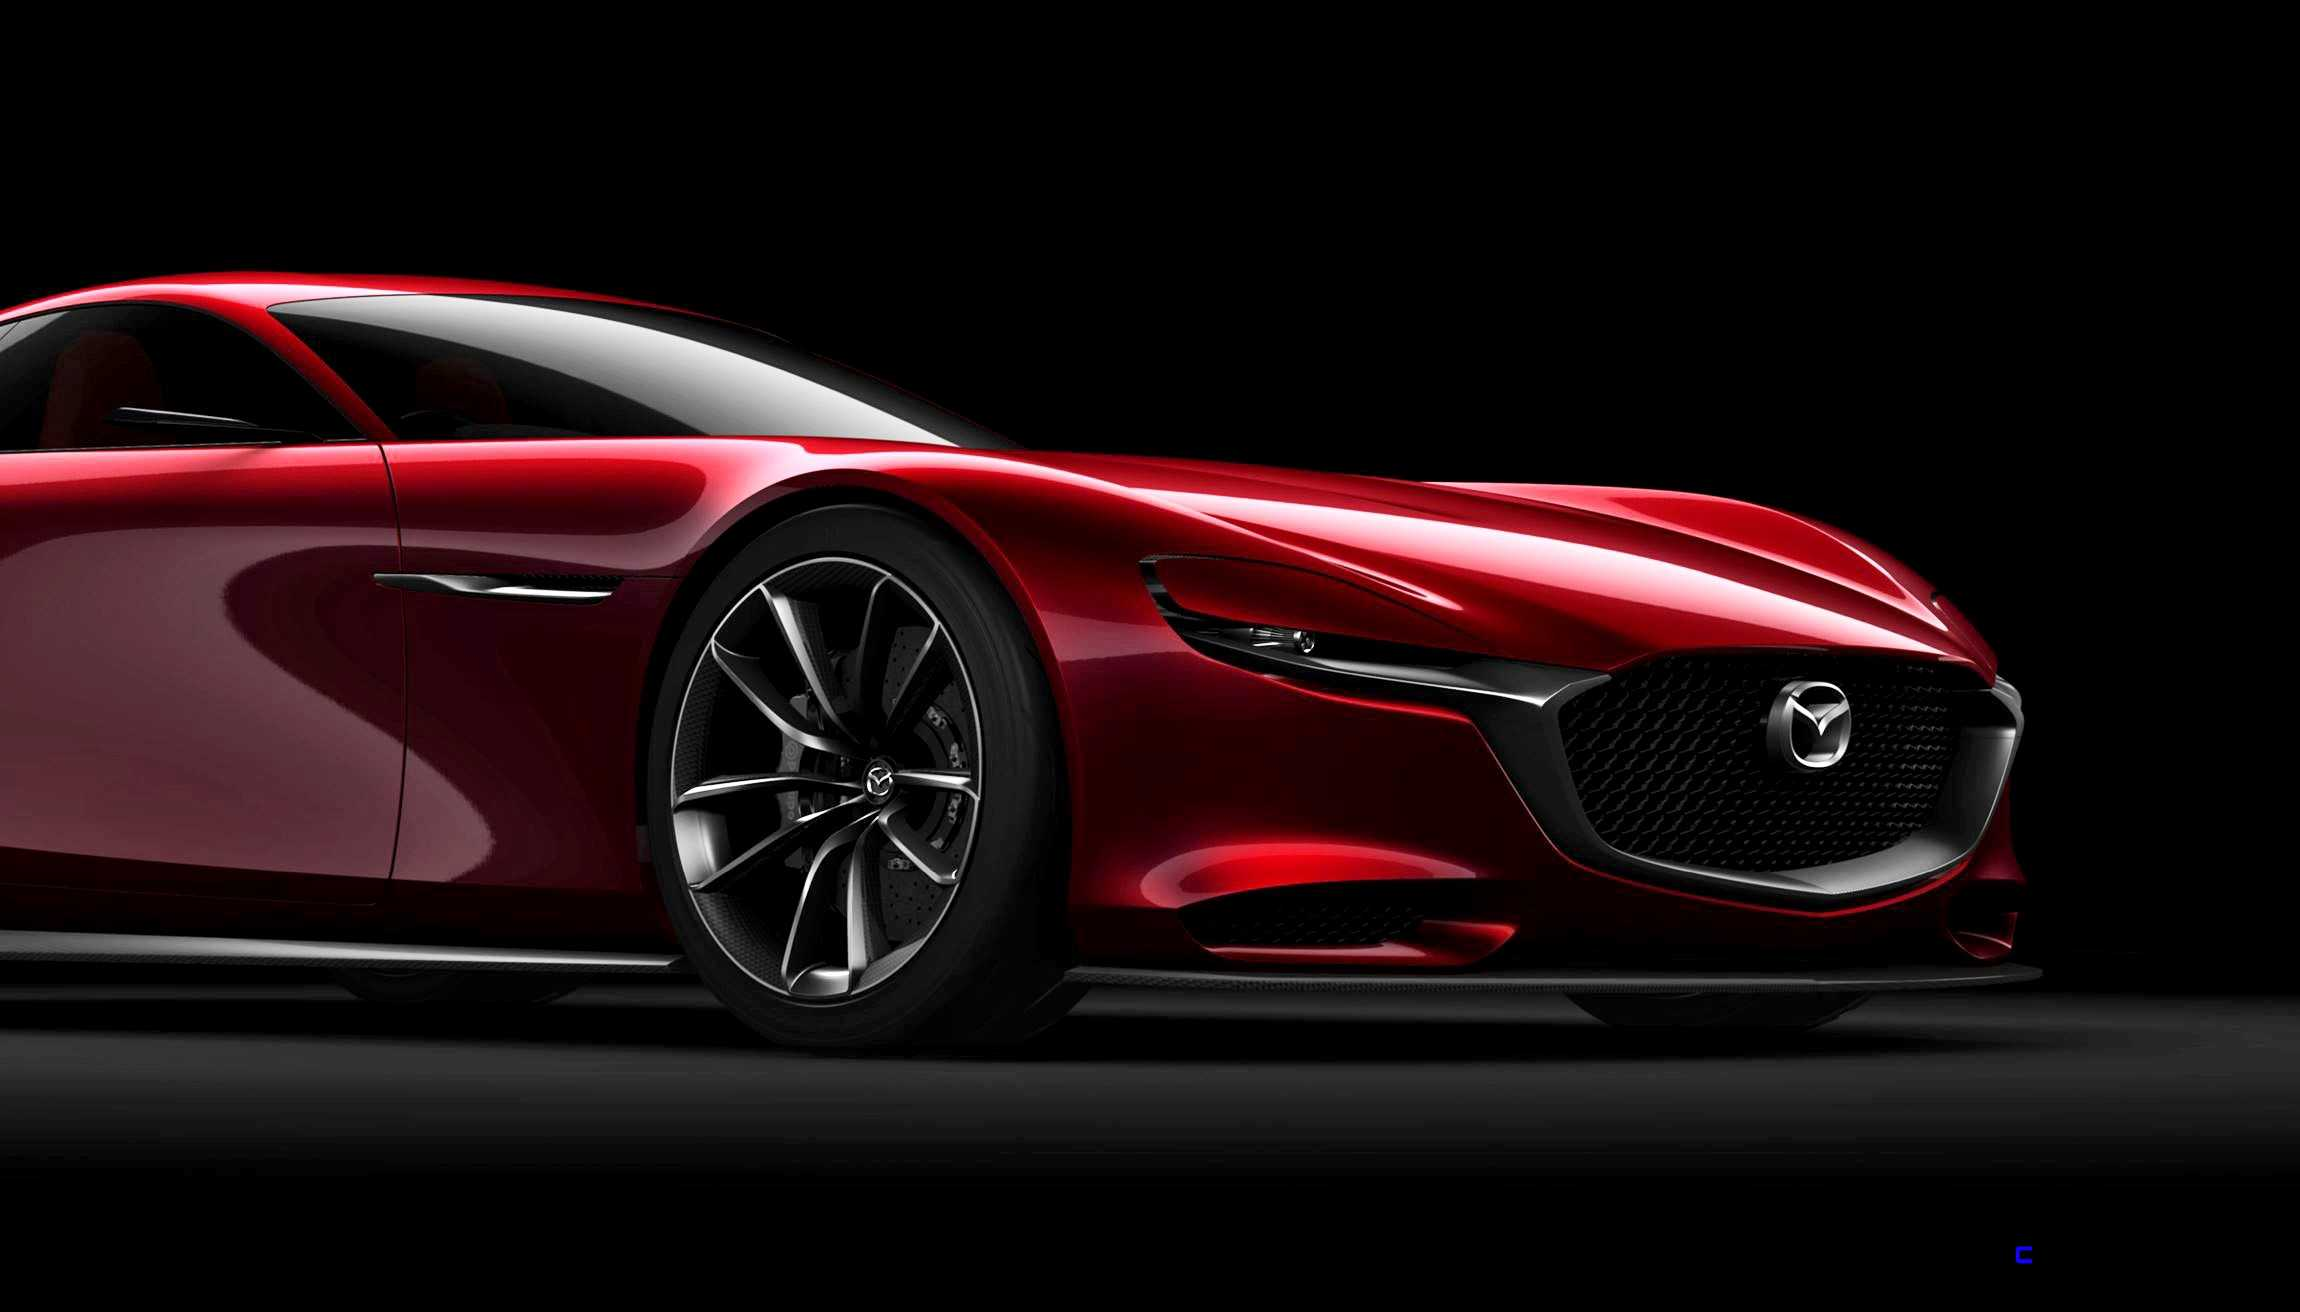 2015 Mazda RX-VISION Concept Is All-New SkyActiv-R Super GT